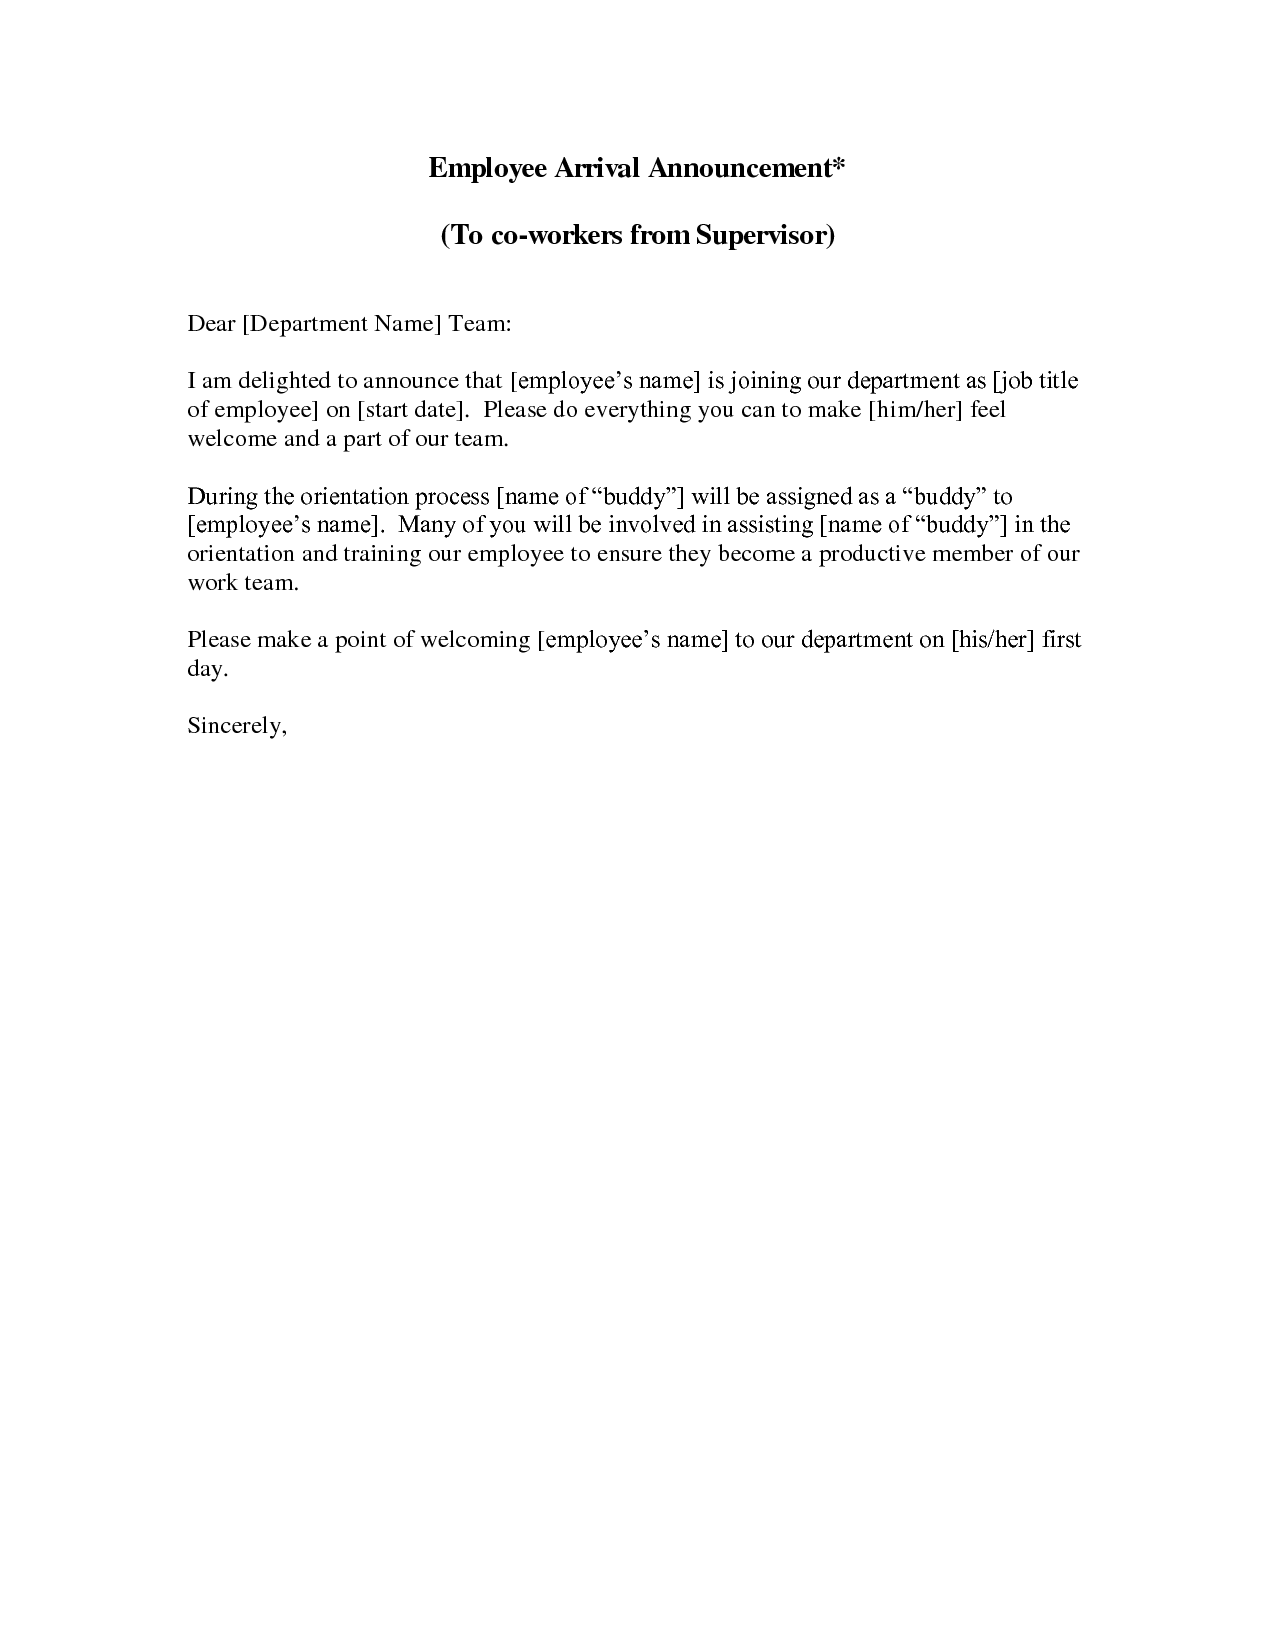 New employee announcement letter - This sample new employee introduction  letter welcomes your new staff member.